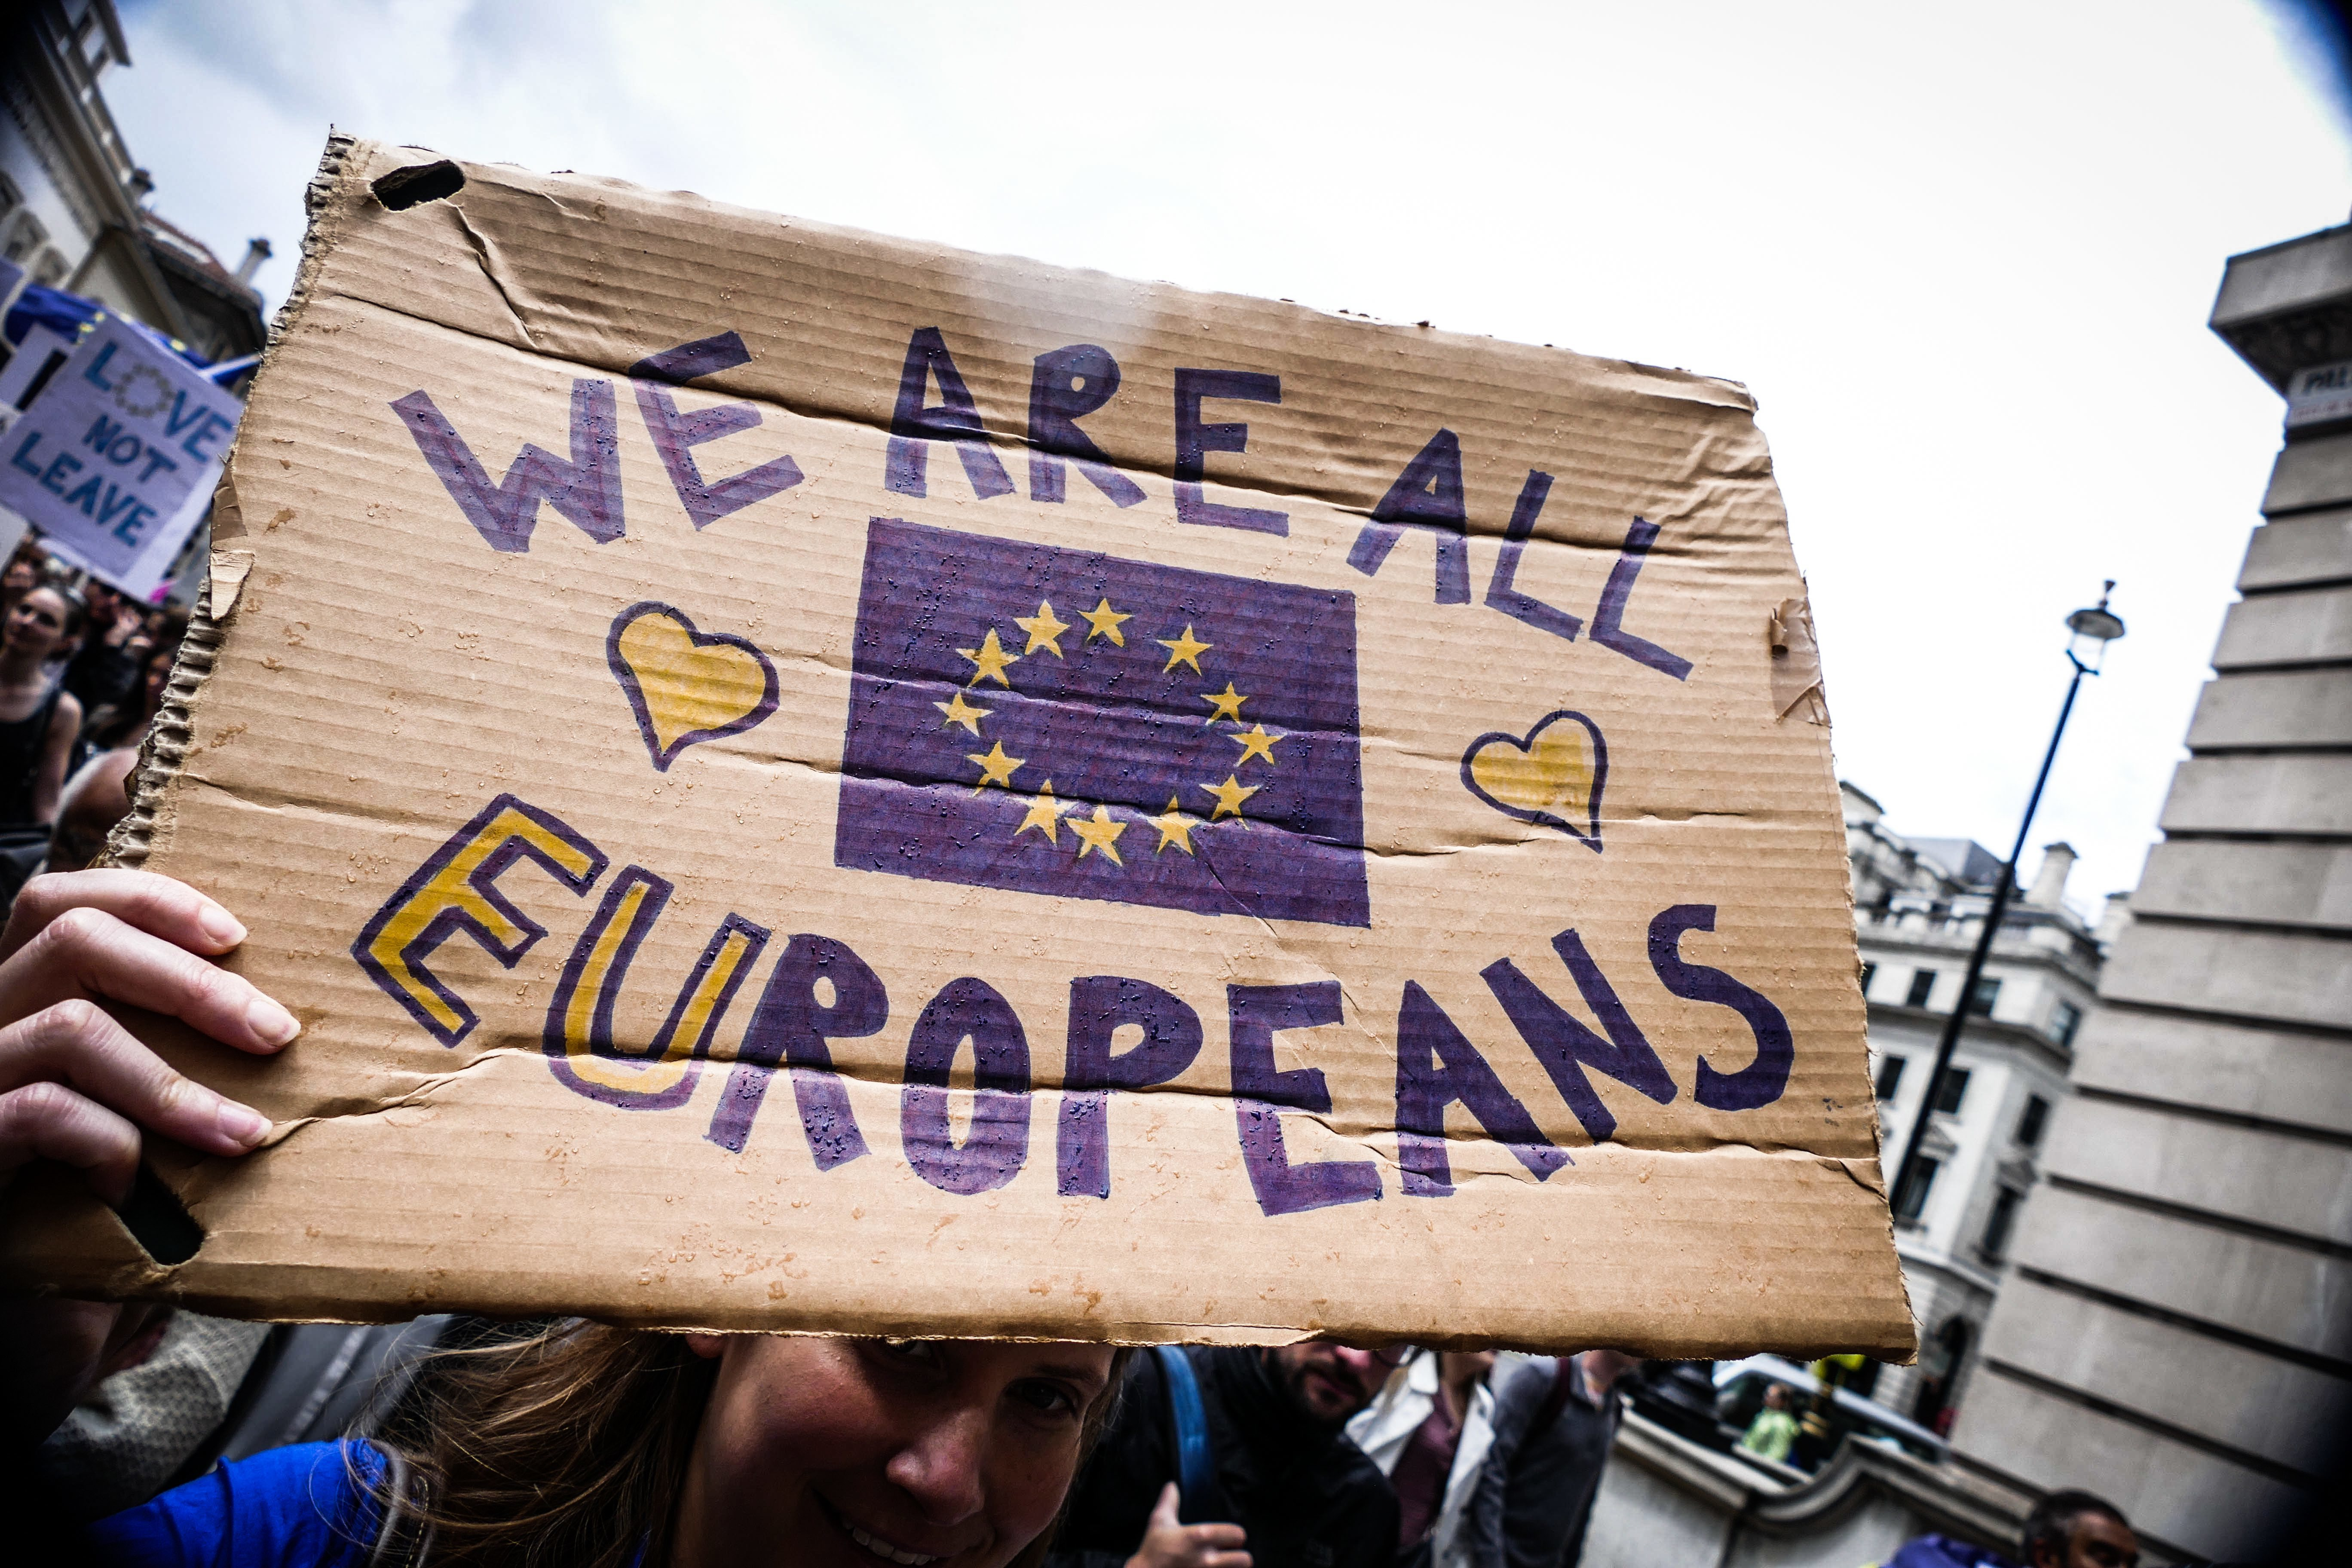 Thousands of protesters take part in a March for Europe, through the centre of London on July 2, 2016, to protest against Britain's vote to leave the EU, which has plunged the government into political turmoil and left the country deeply polarised. Protesters from a variety of movements march from Park Lane to Parliament Square to show solidarity with those looking to create a more positive, inclusive kinder Britain in Europe. (Photo by Gail Orenstein/NurPhoto) | Keine Weitergabe an Wiederverkäufer.